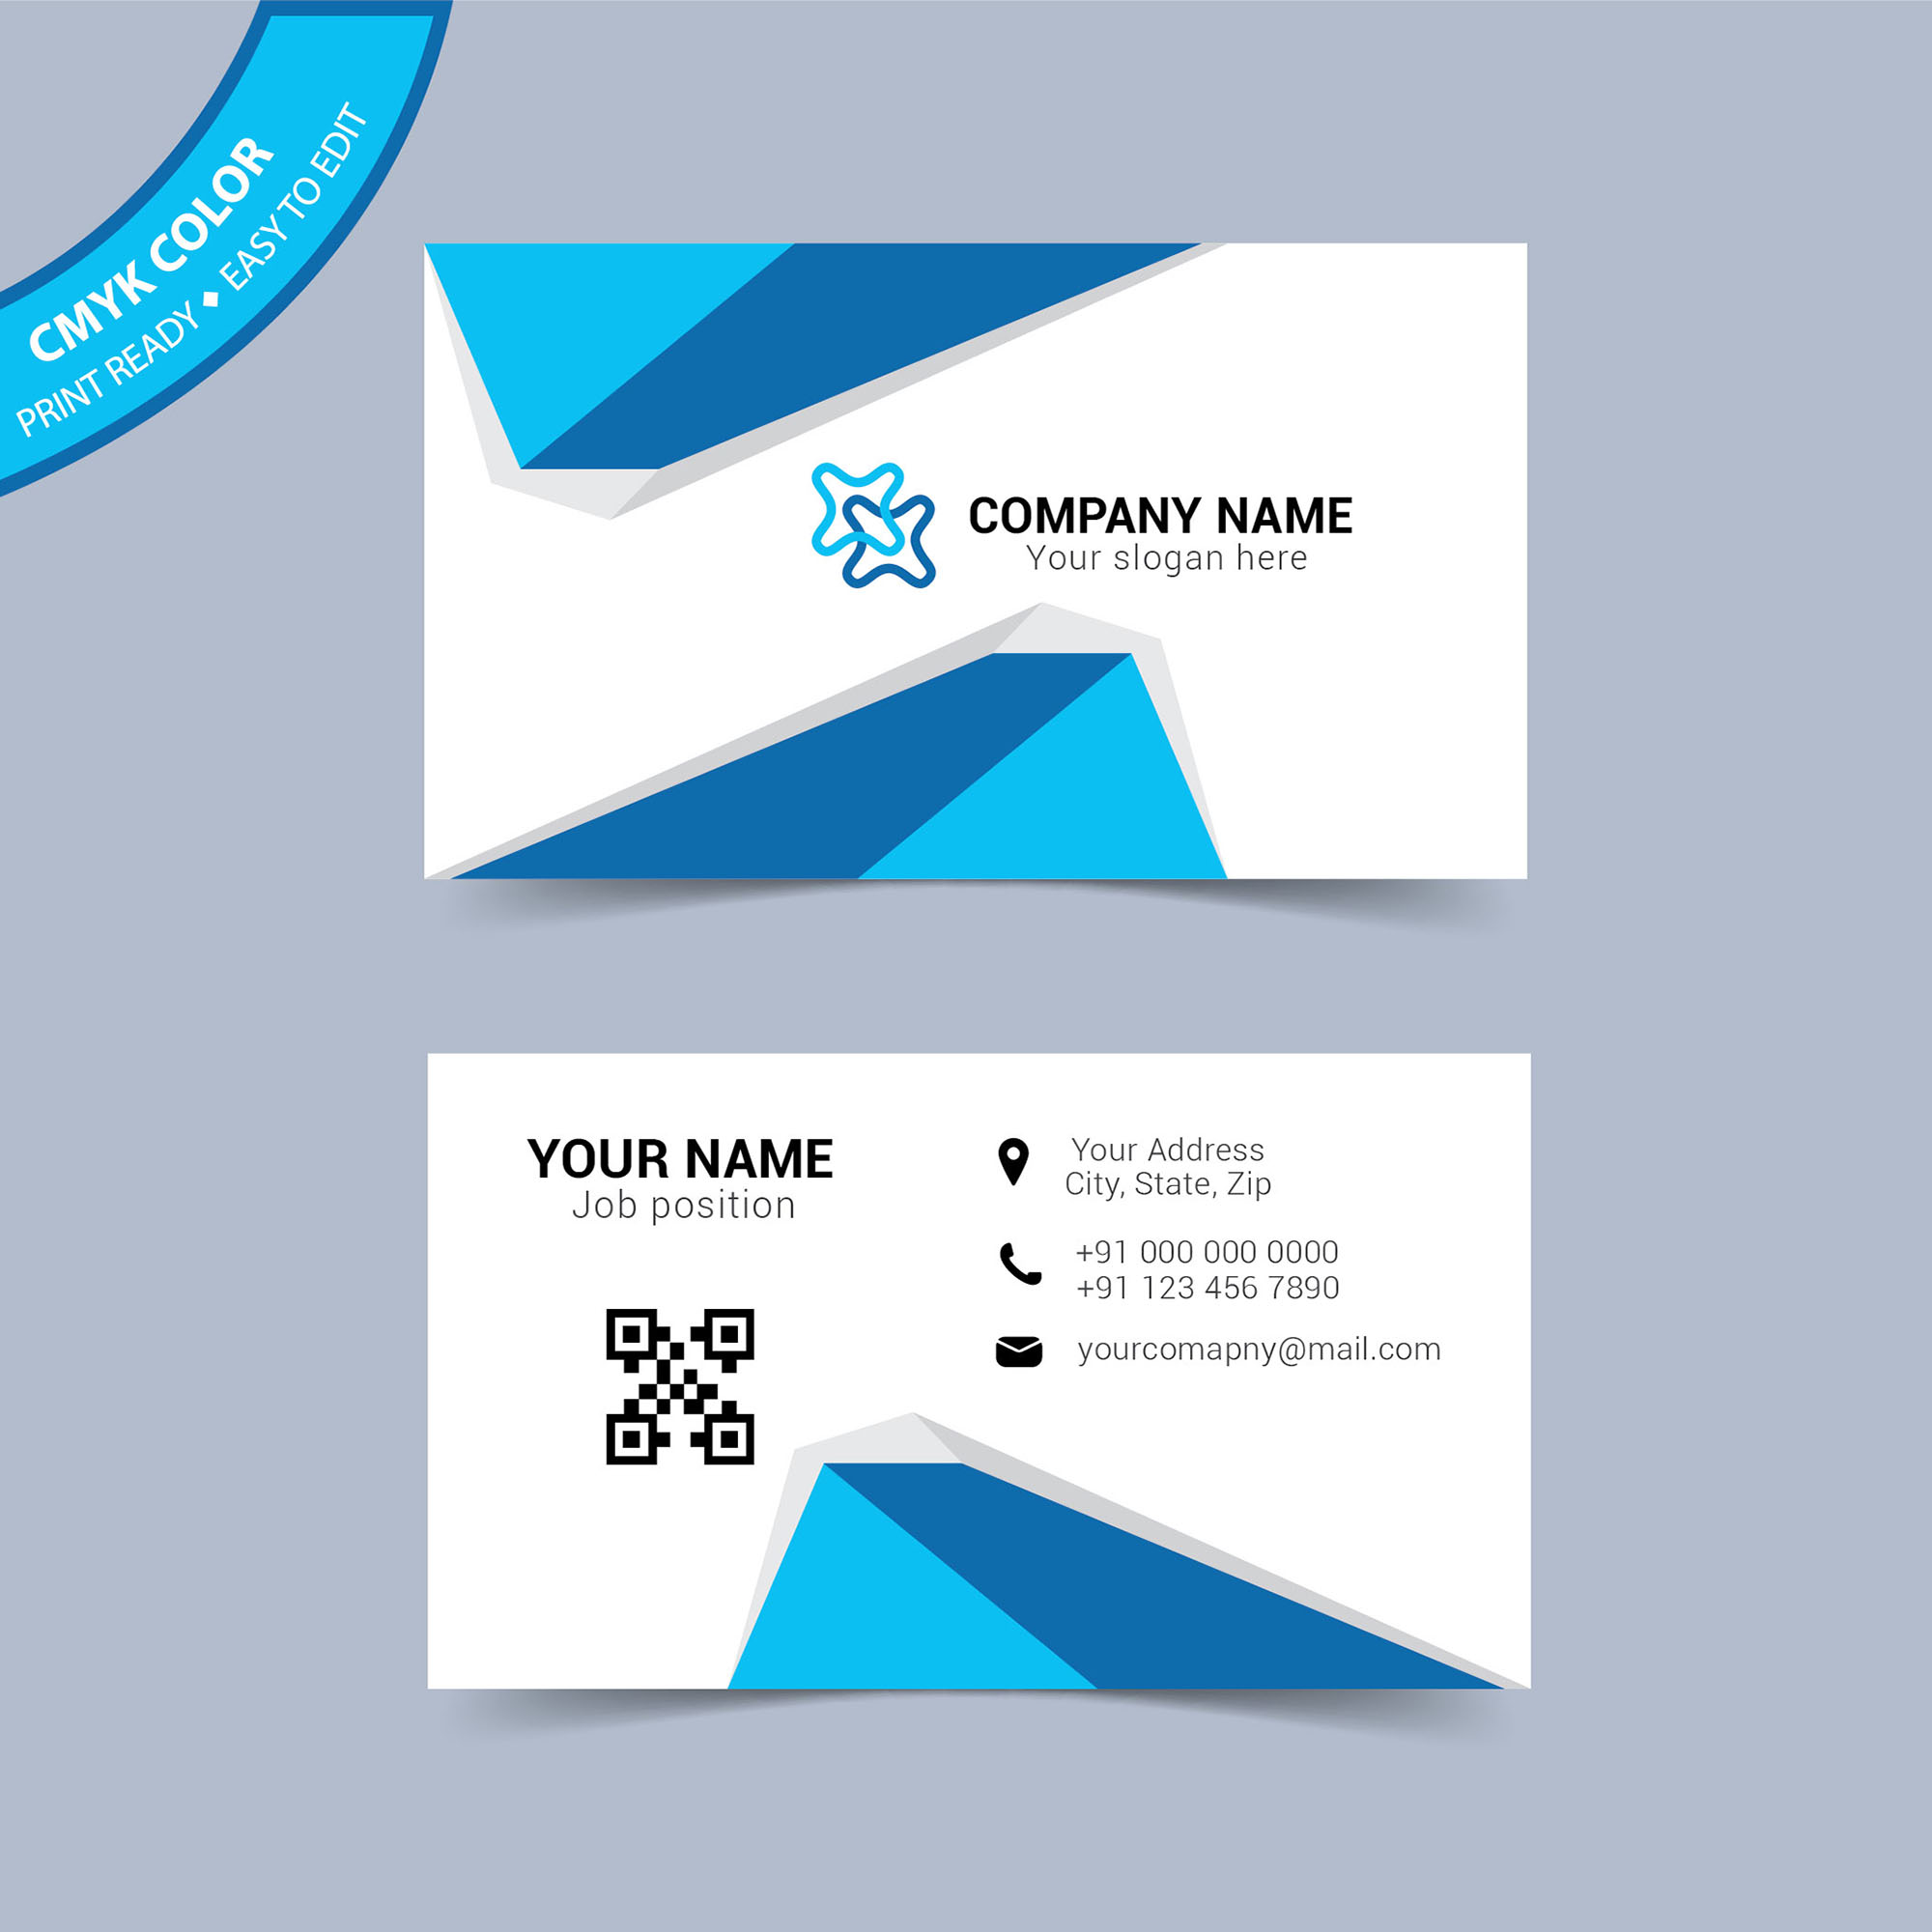 Business Card Layout Template Free Download Wisxicom - Free business card layout template